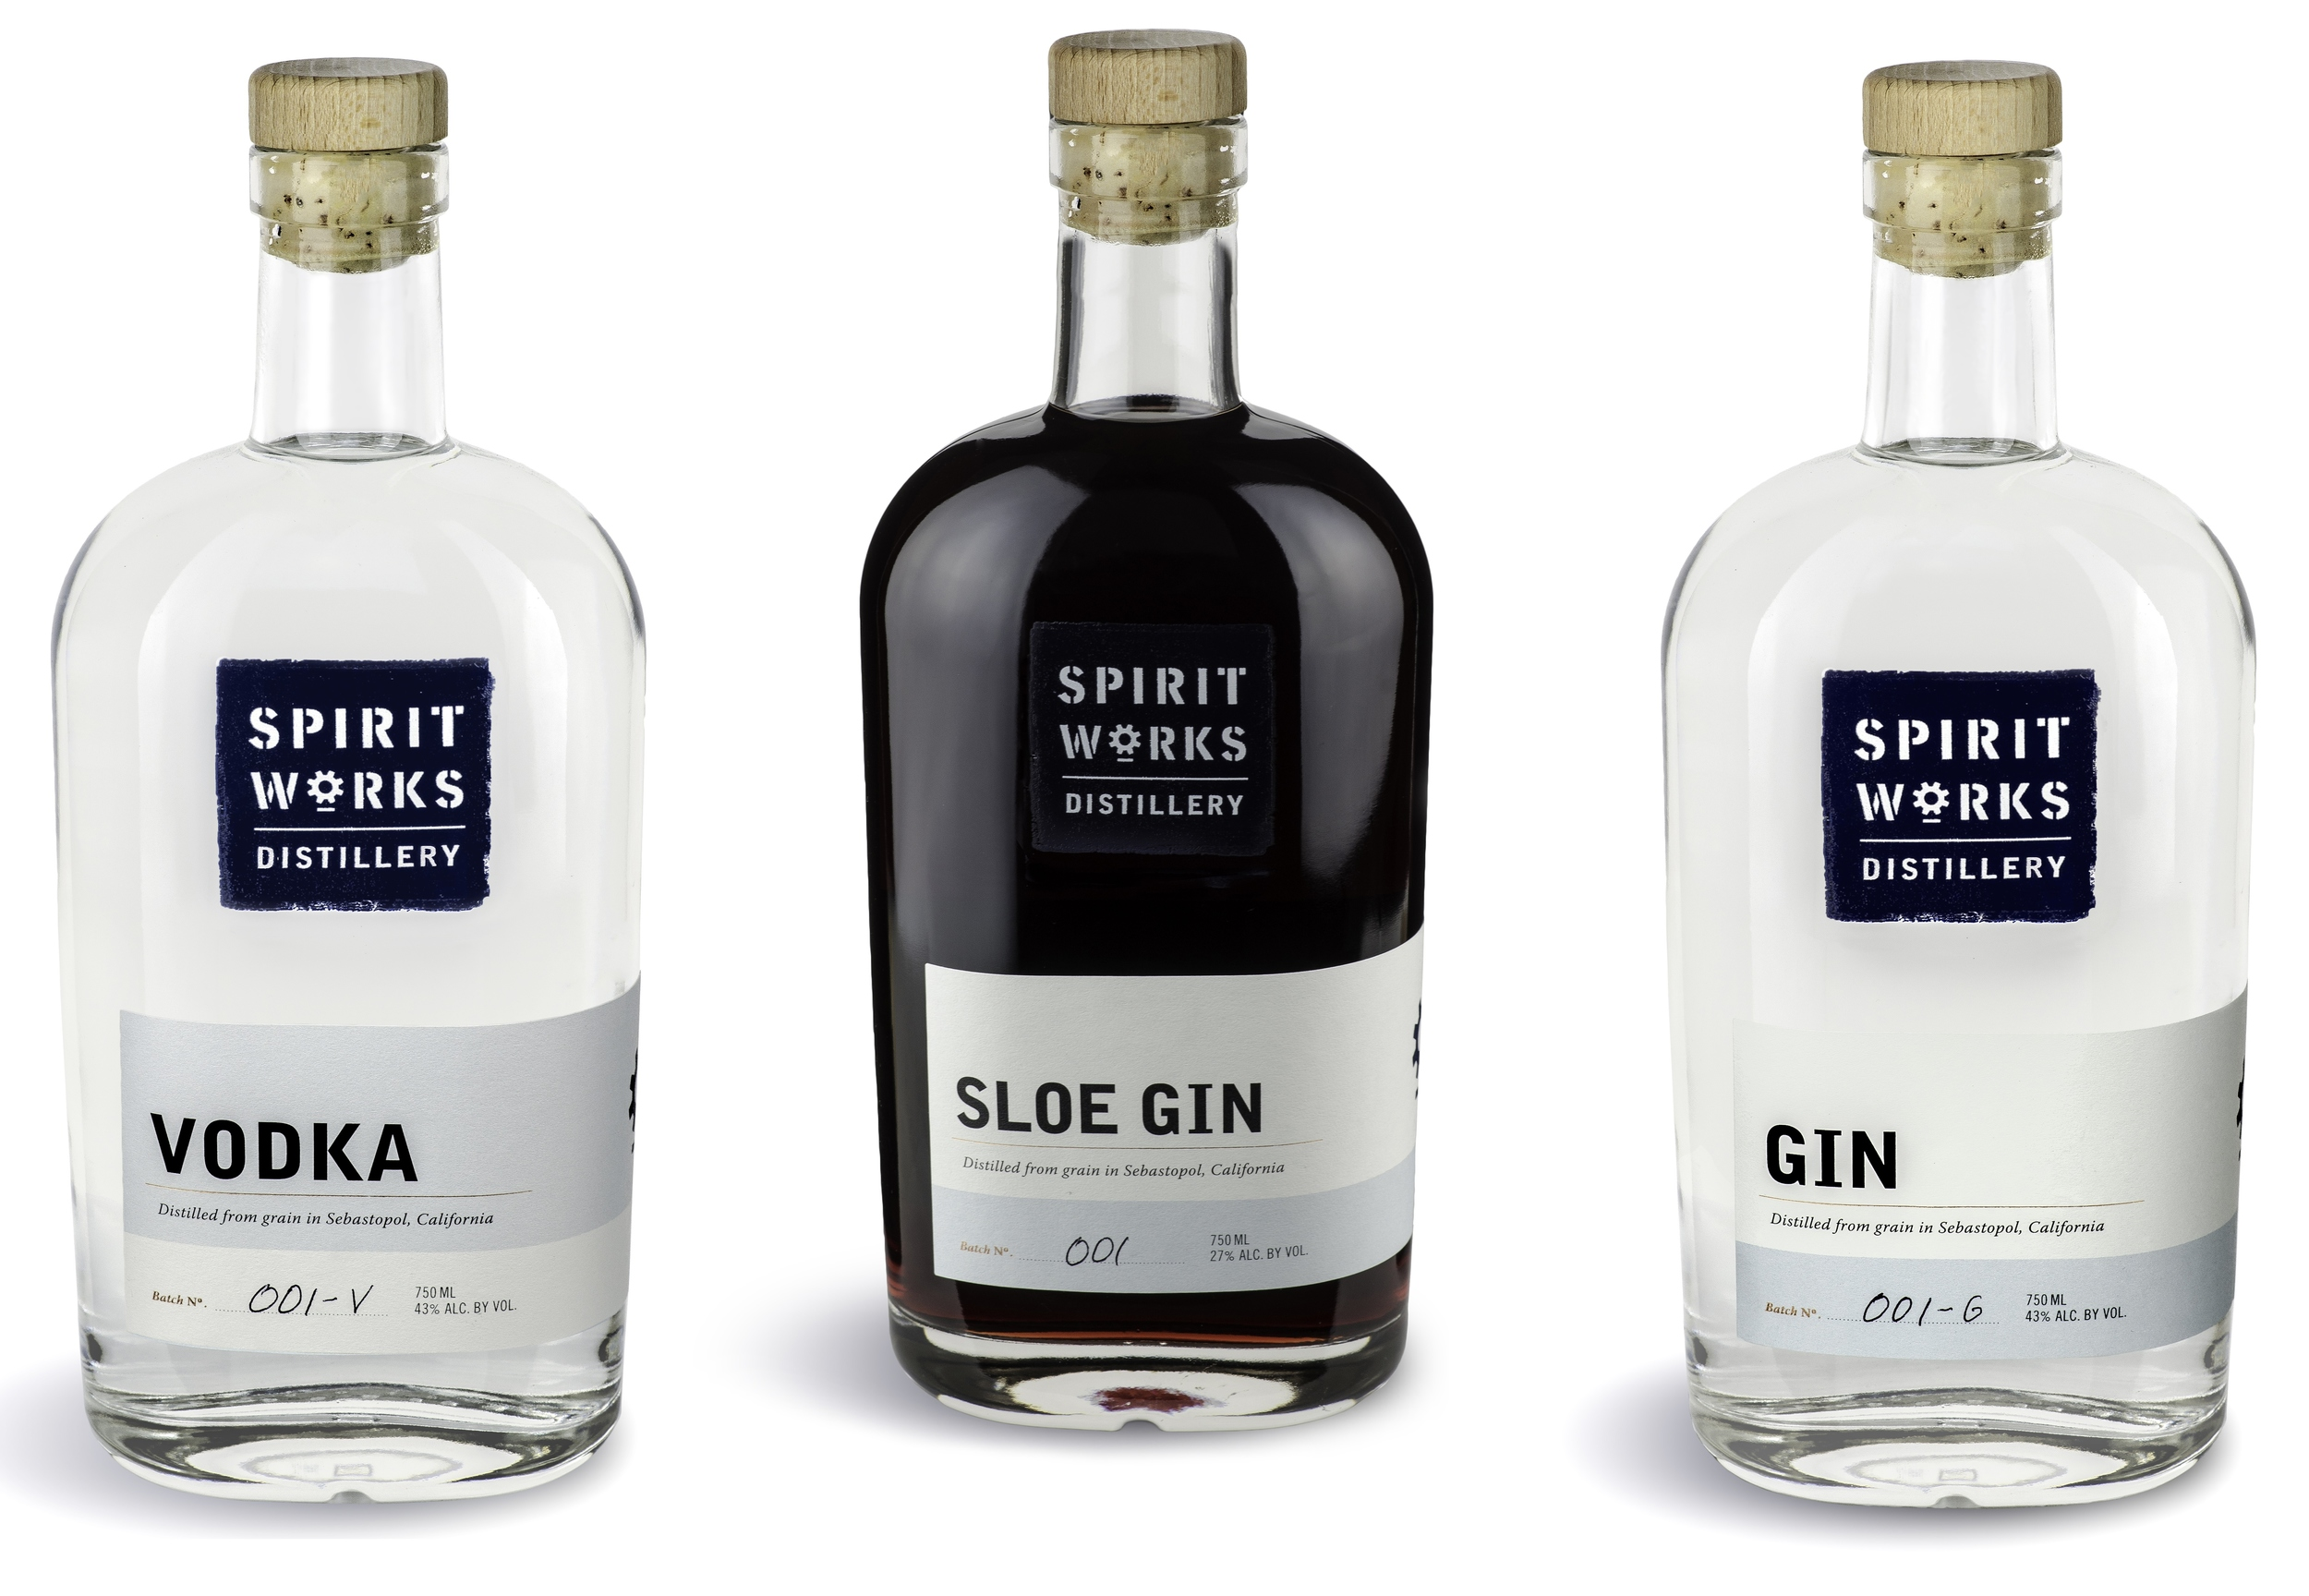 Spirit Works Vodka, Sloe Gin & Gin